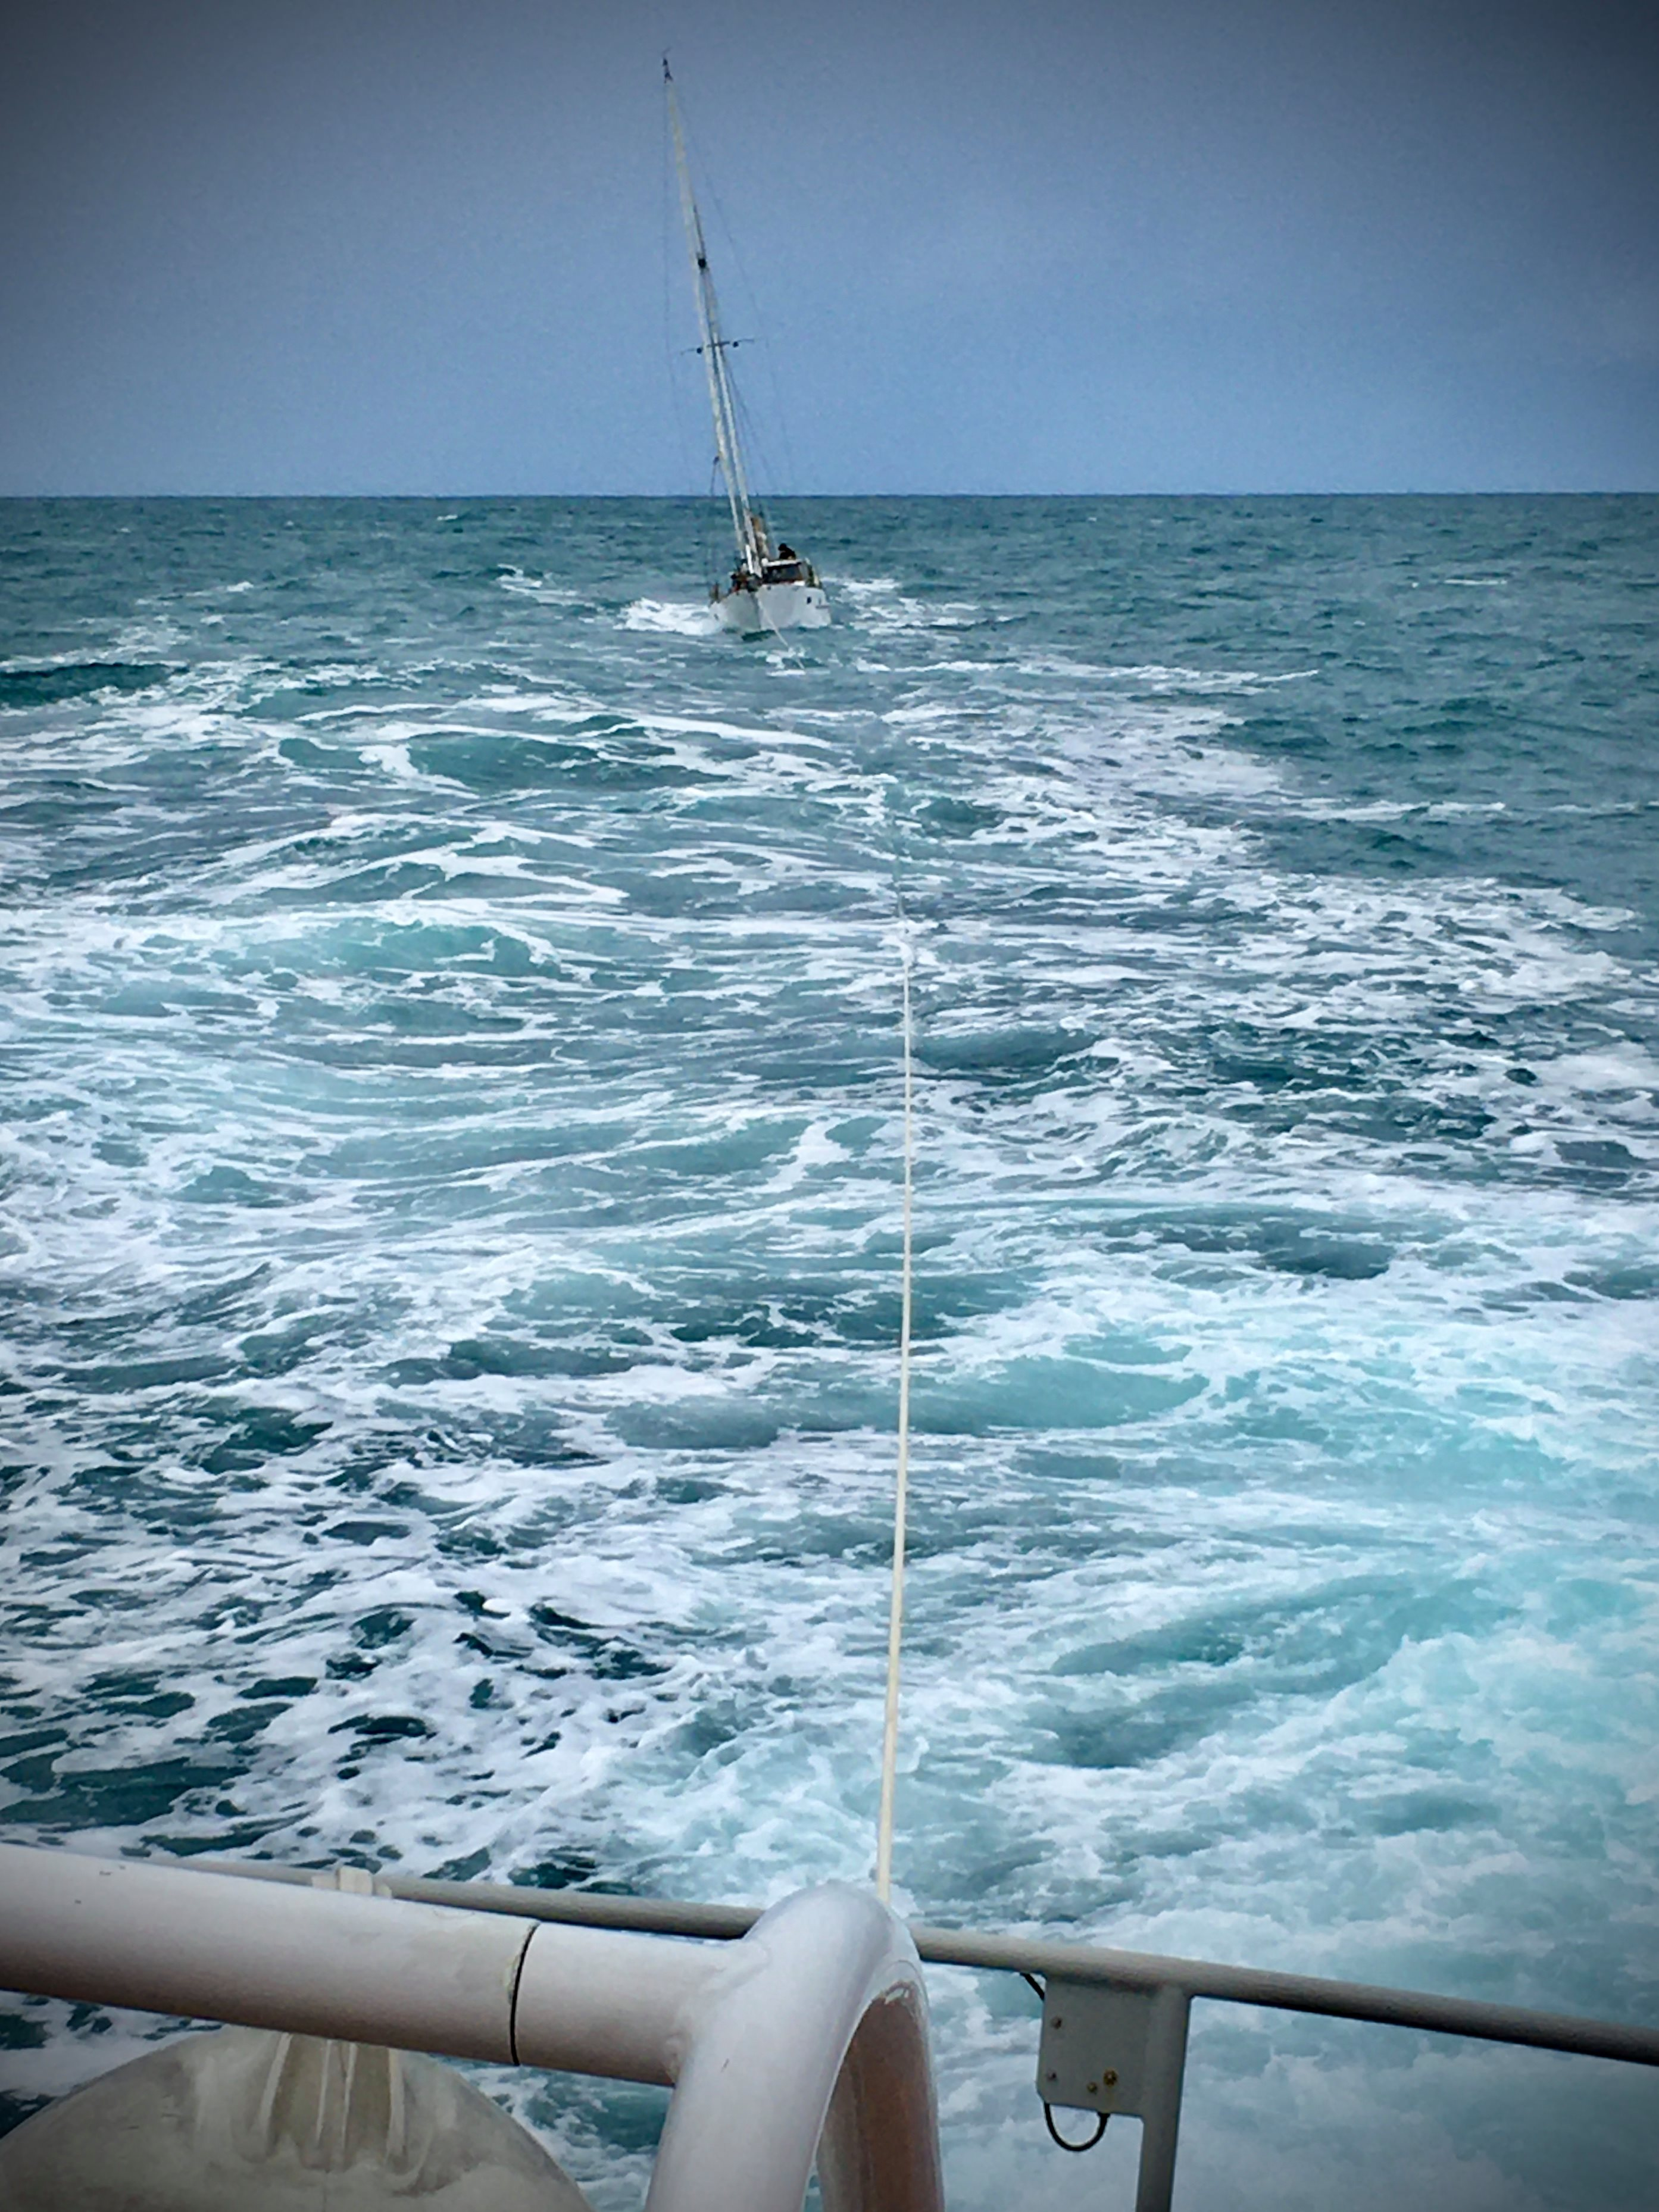 Photo shows the yacht under tow, taken from the upper steering position